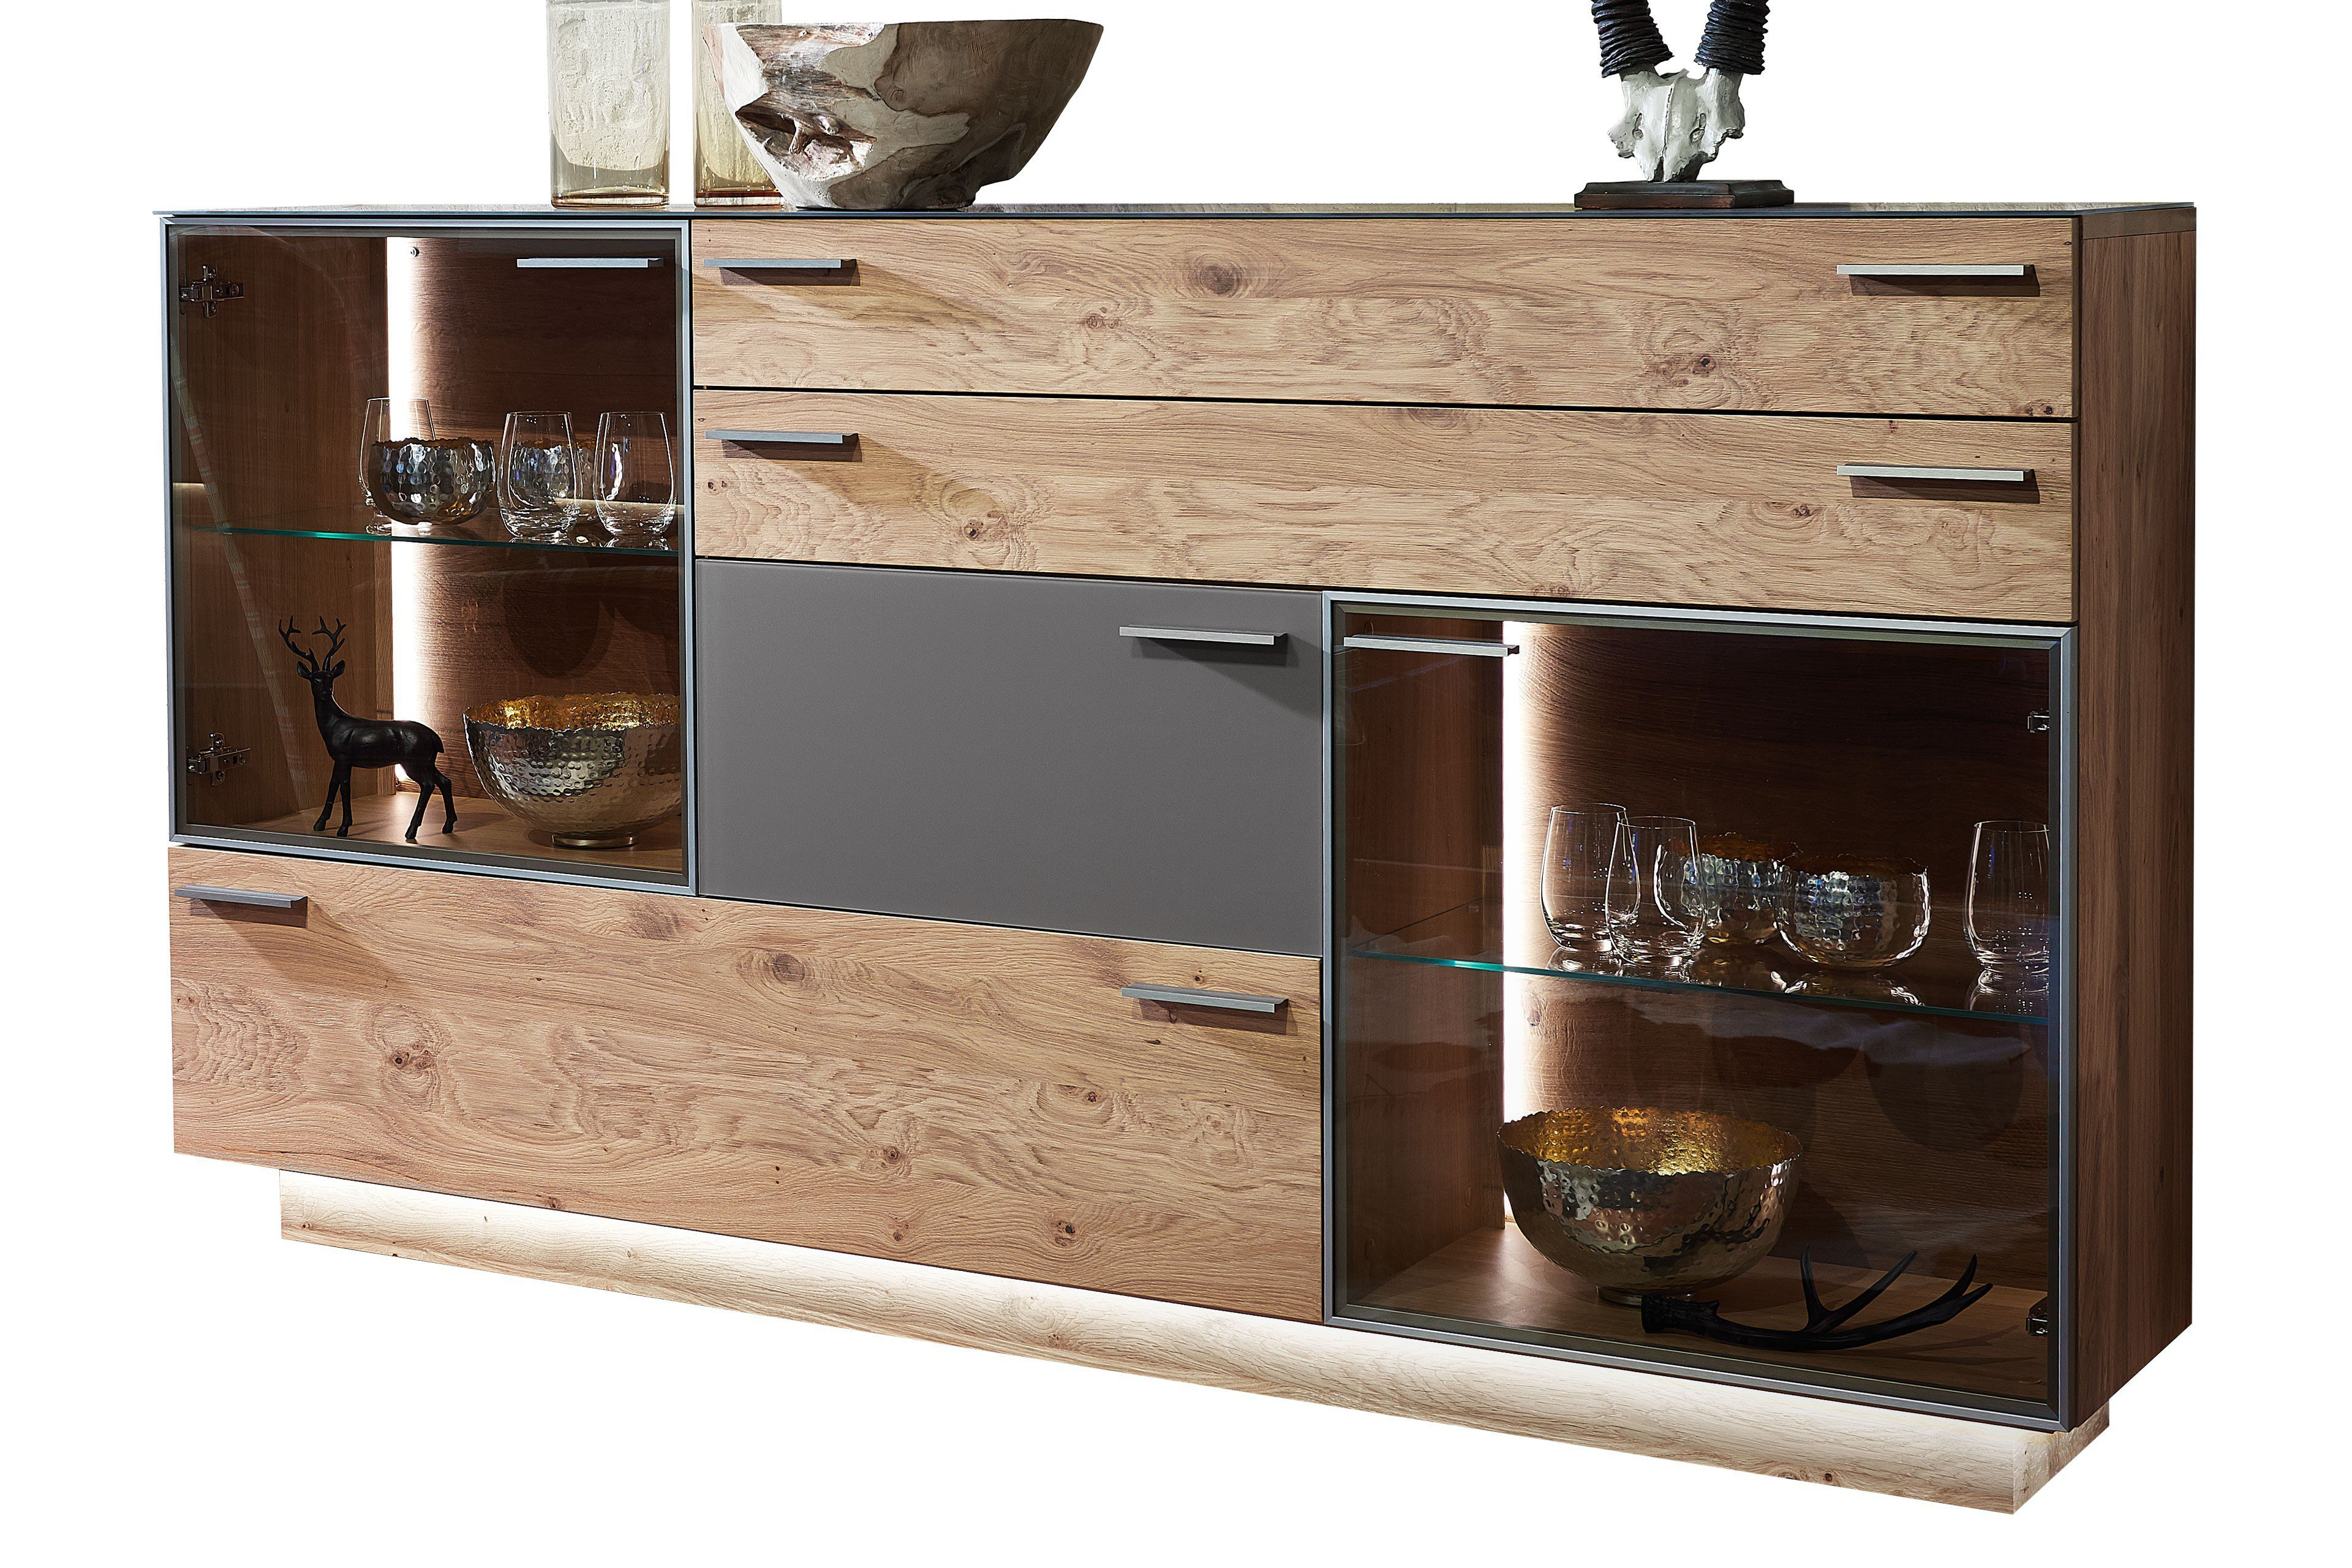 schr der wohnm bel sideboard kitzalm montana kernasteiche grau m bel letz ihr online shop. Black Bedroom Furniture Sets. Home Design Ideas